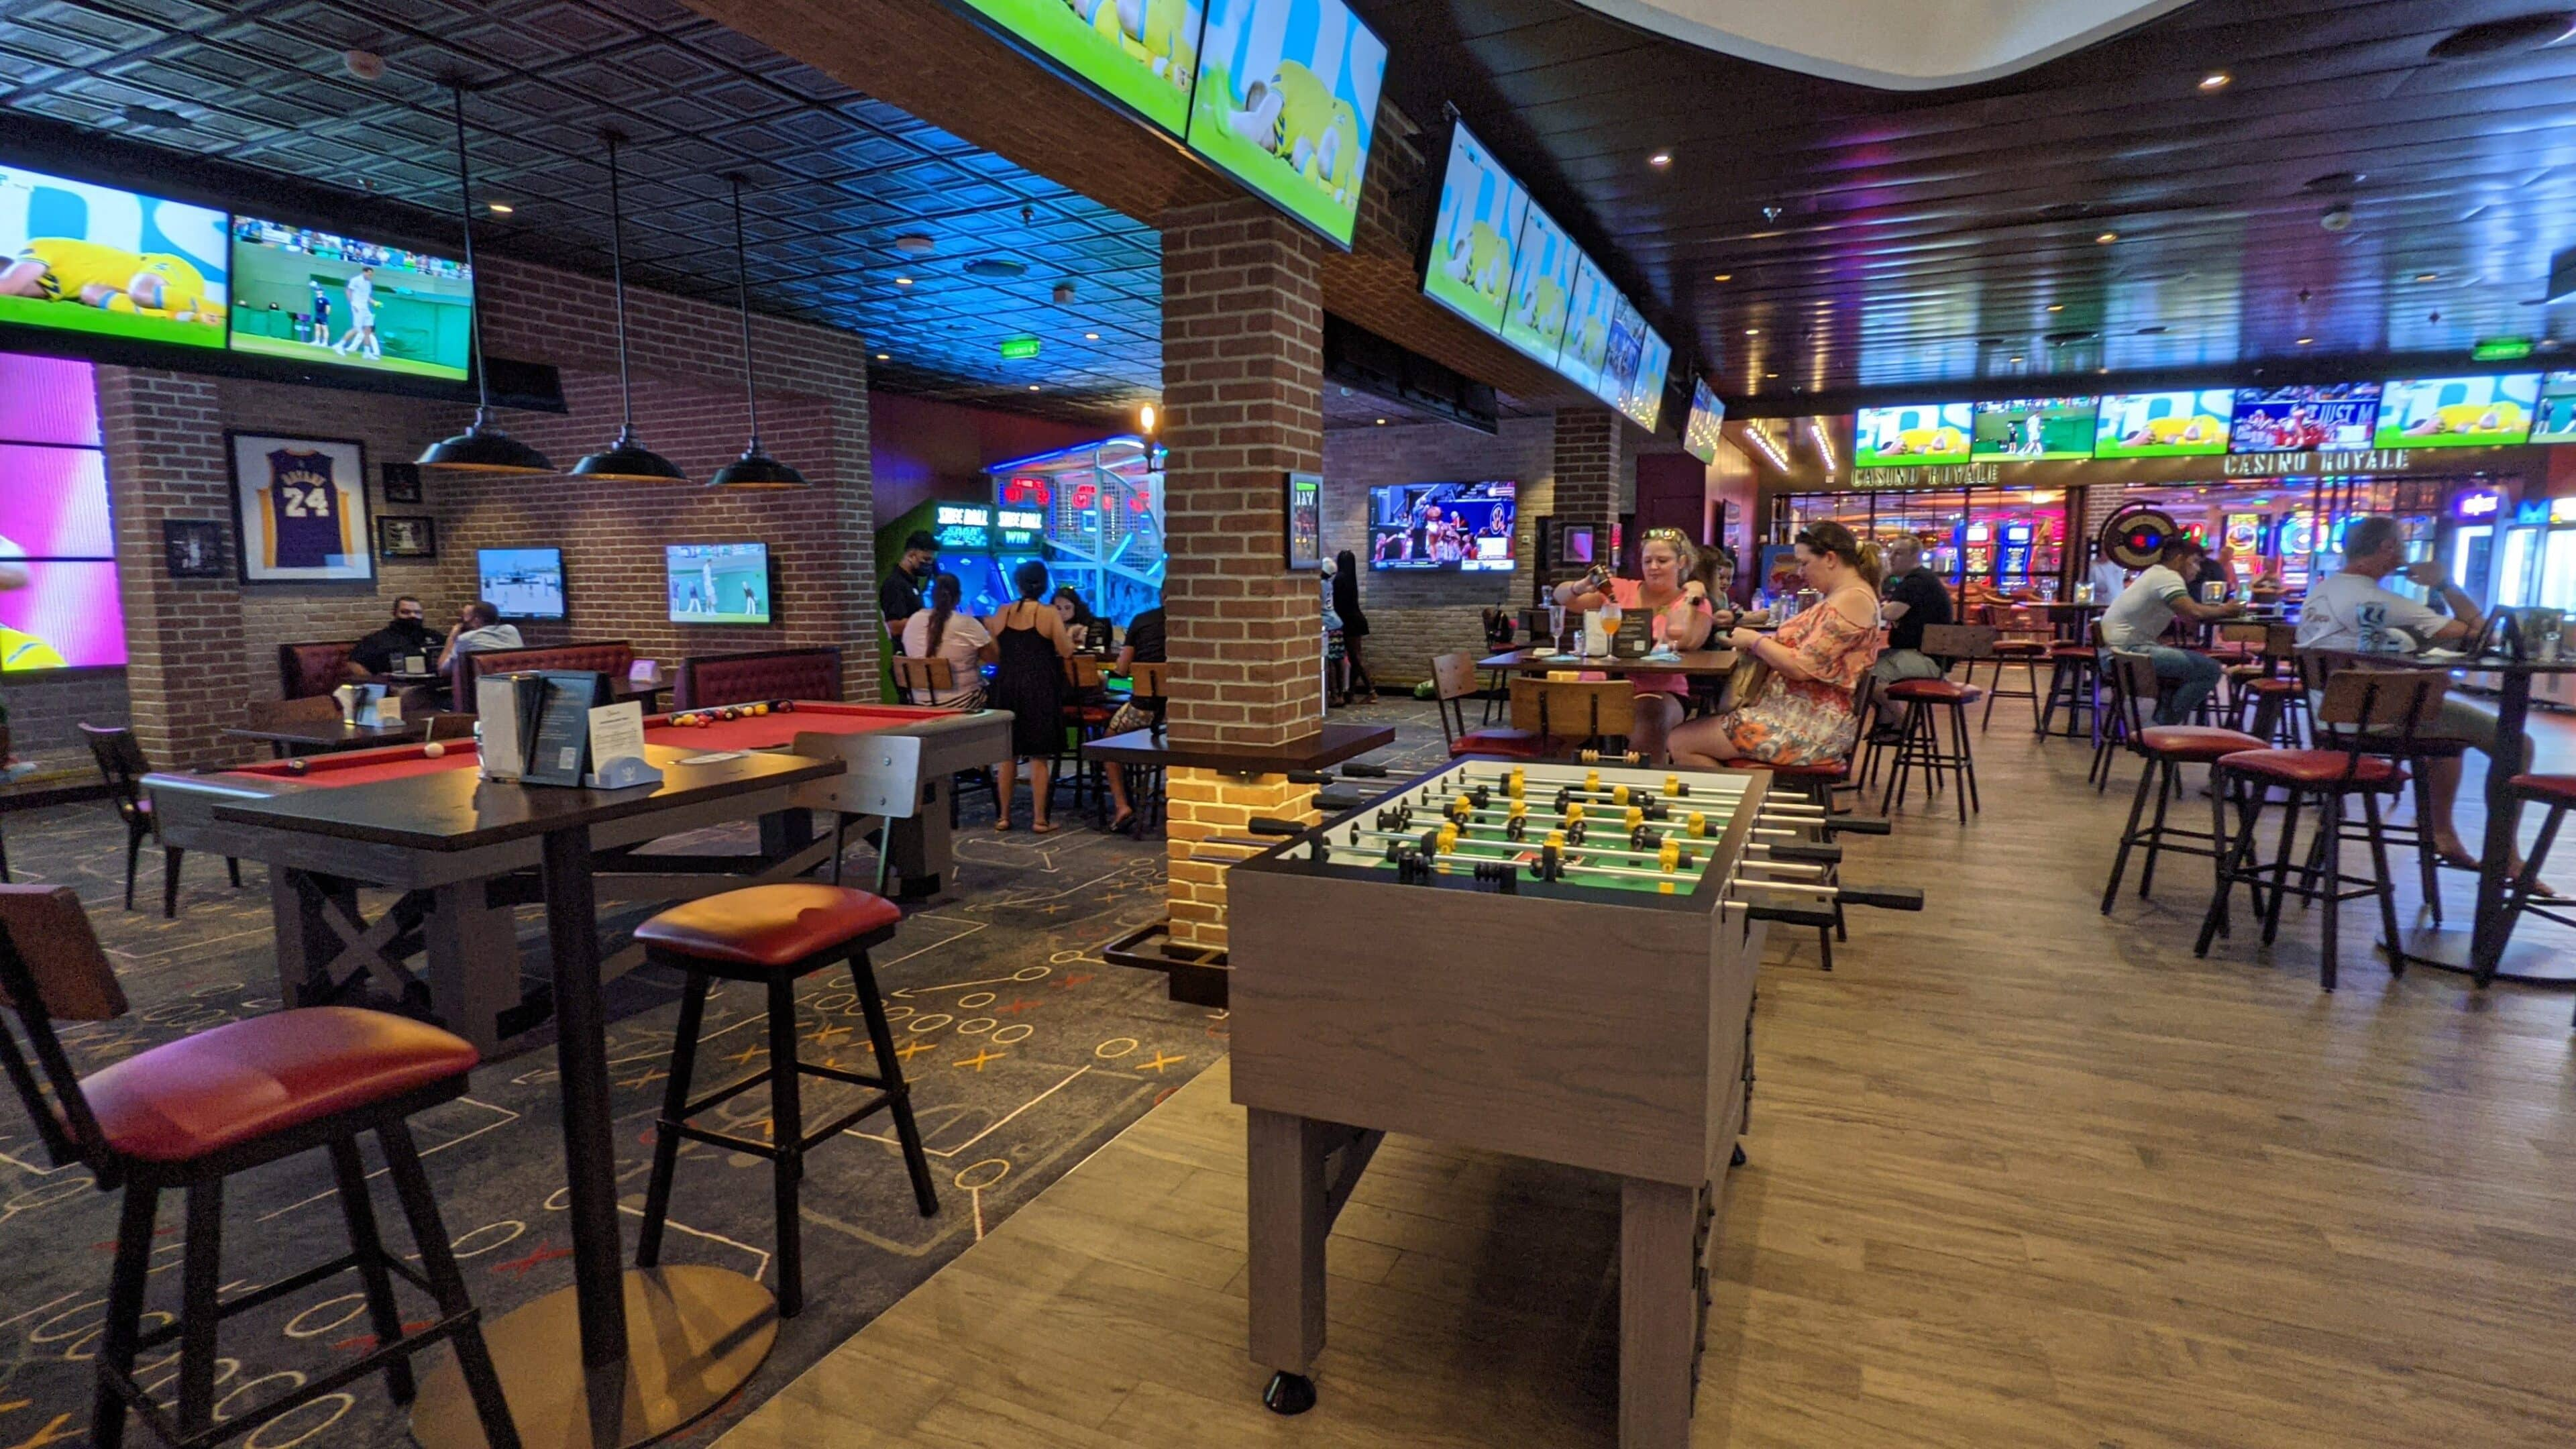 PlayMakers Sports Bar